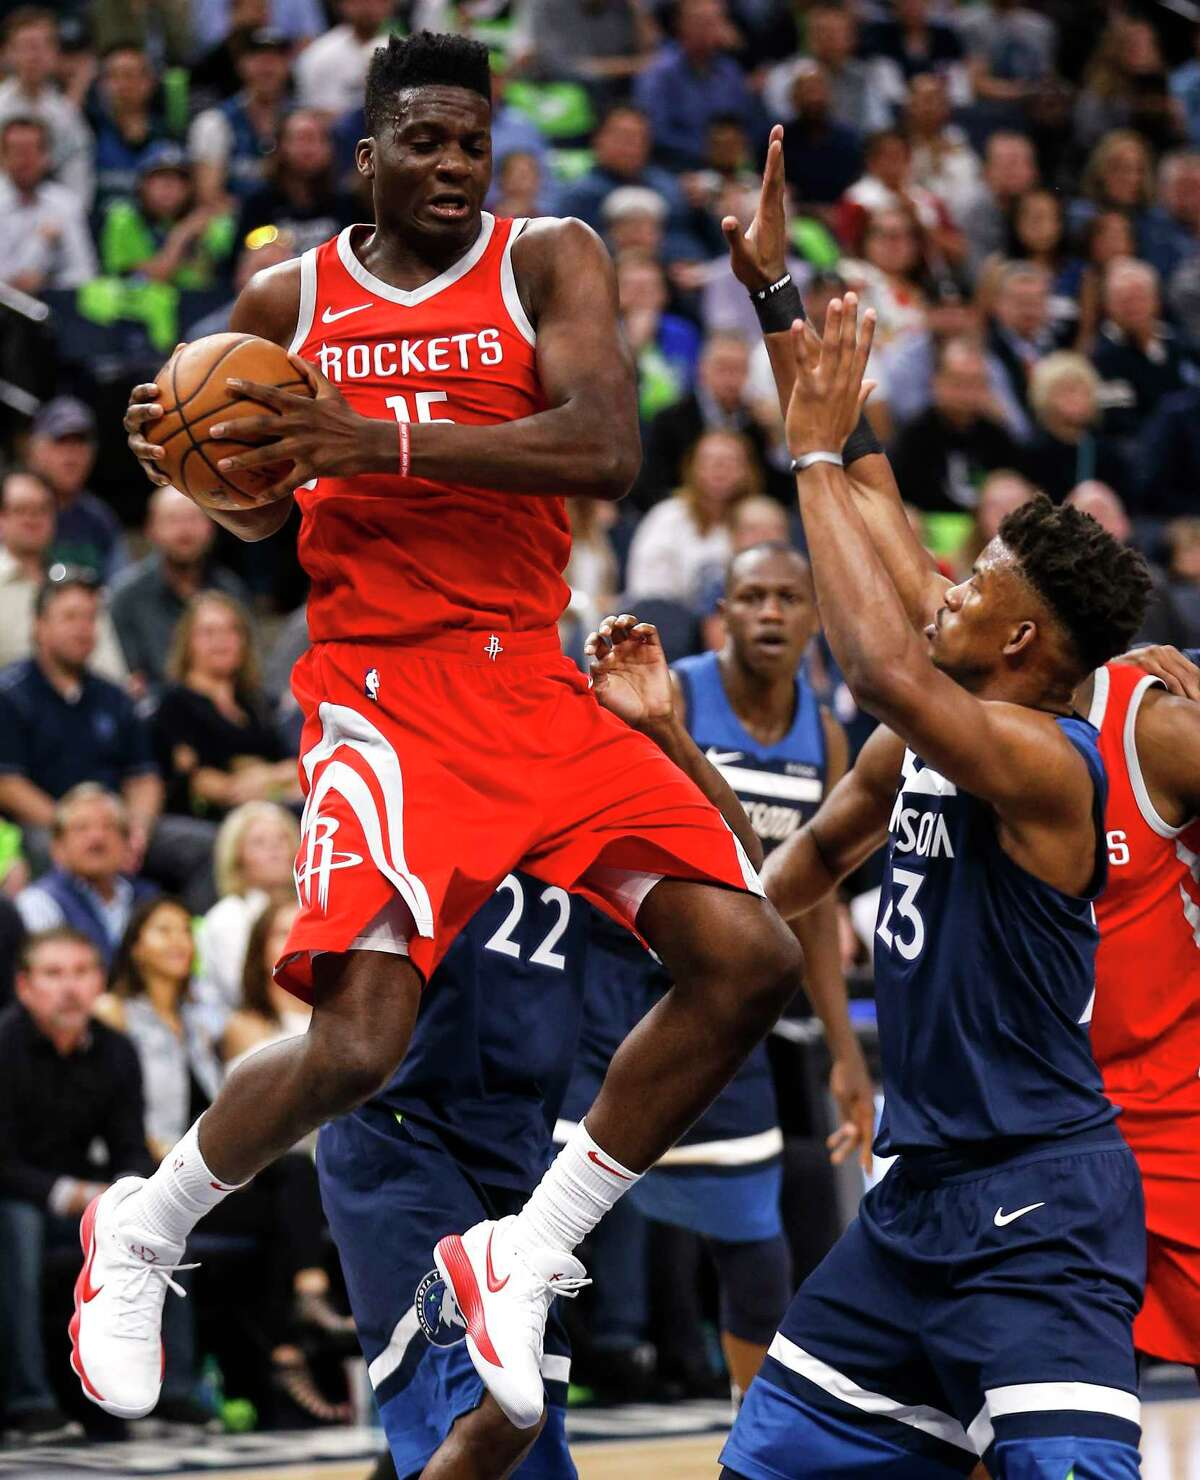 Houston Rockets center Clint Capela (15) grabs a rebound away from Minnesota Timberwolves guard Jimmy Butler (23) during the first half of Game 4 of the first round of the NBA Playoffs at Target Center Monday, April 23, 2018 in Minneapolis.